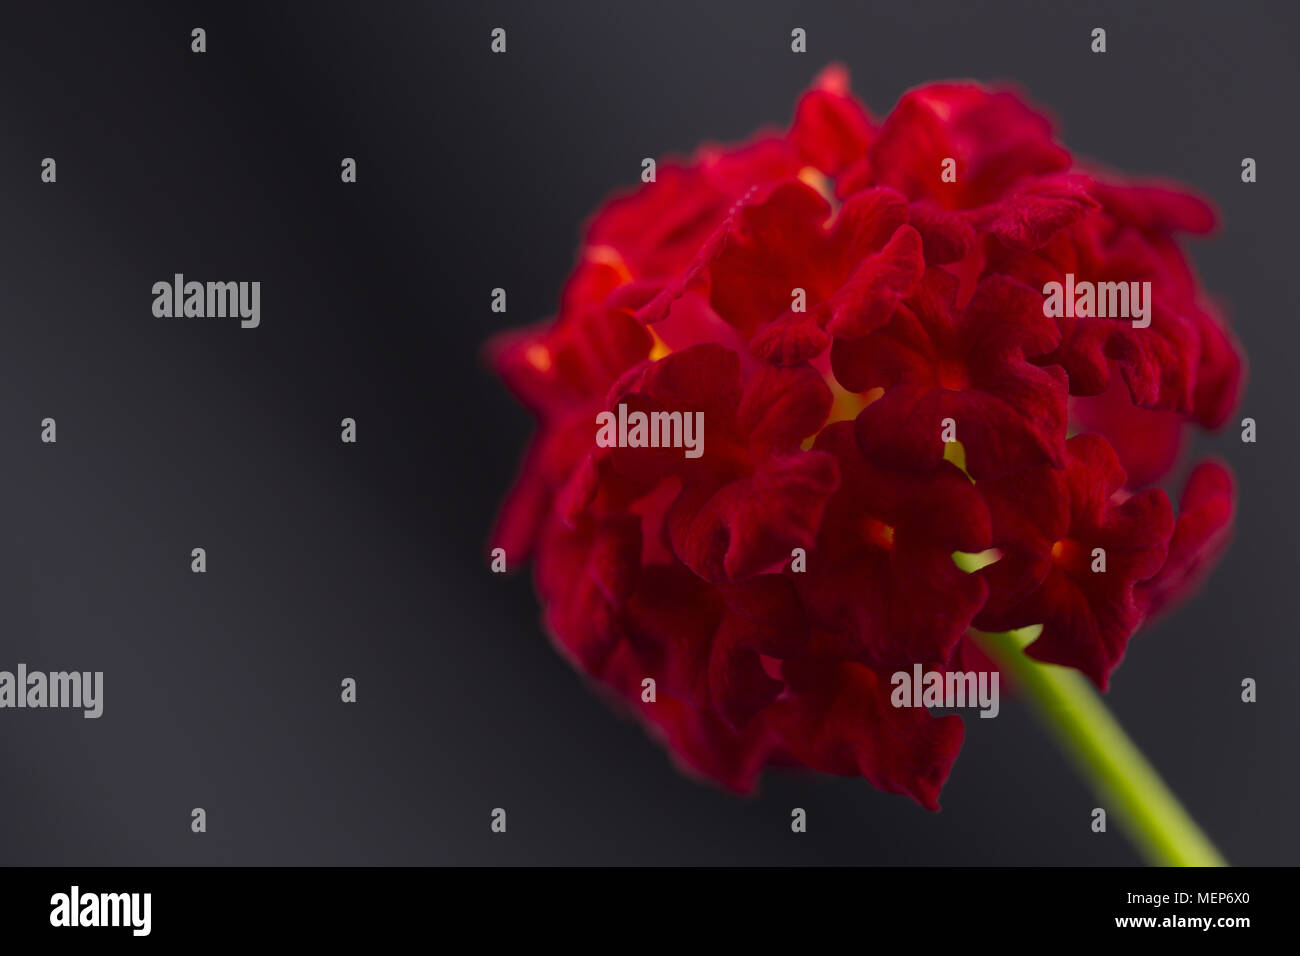 Close up of perennial lantana blossom, a flower in verbena family that attracts butterflies and hummingbirds - Stock Image